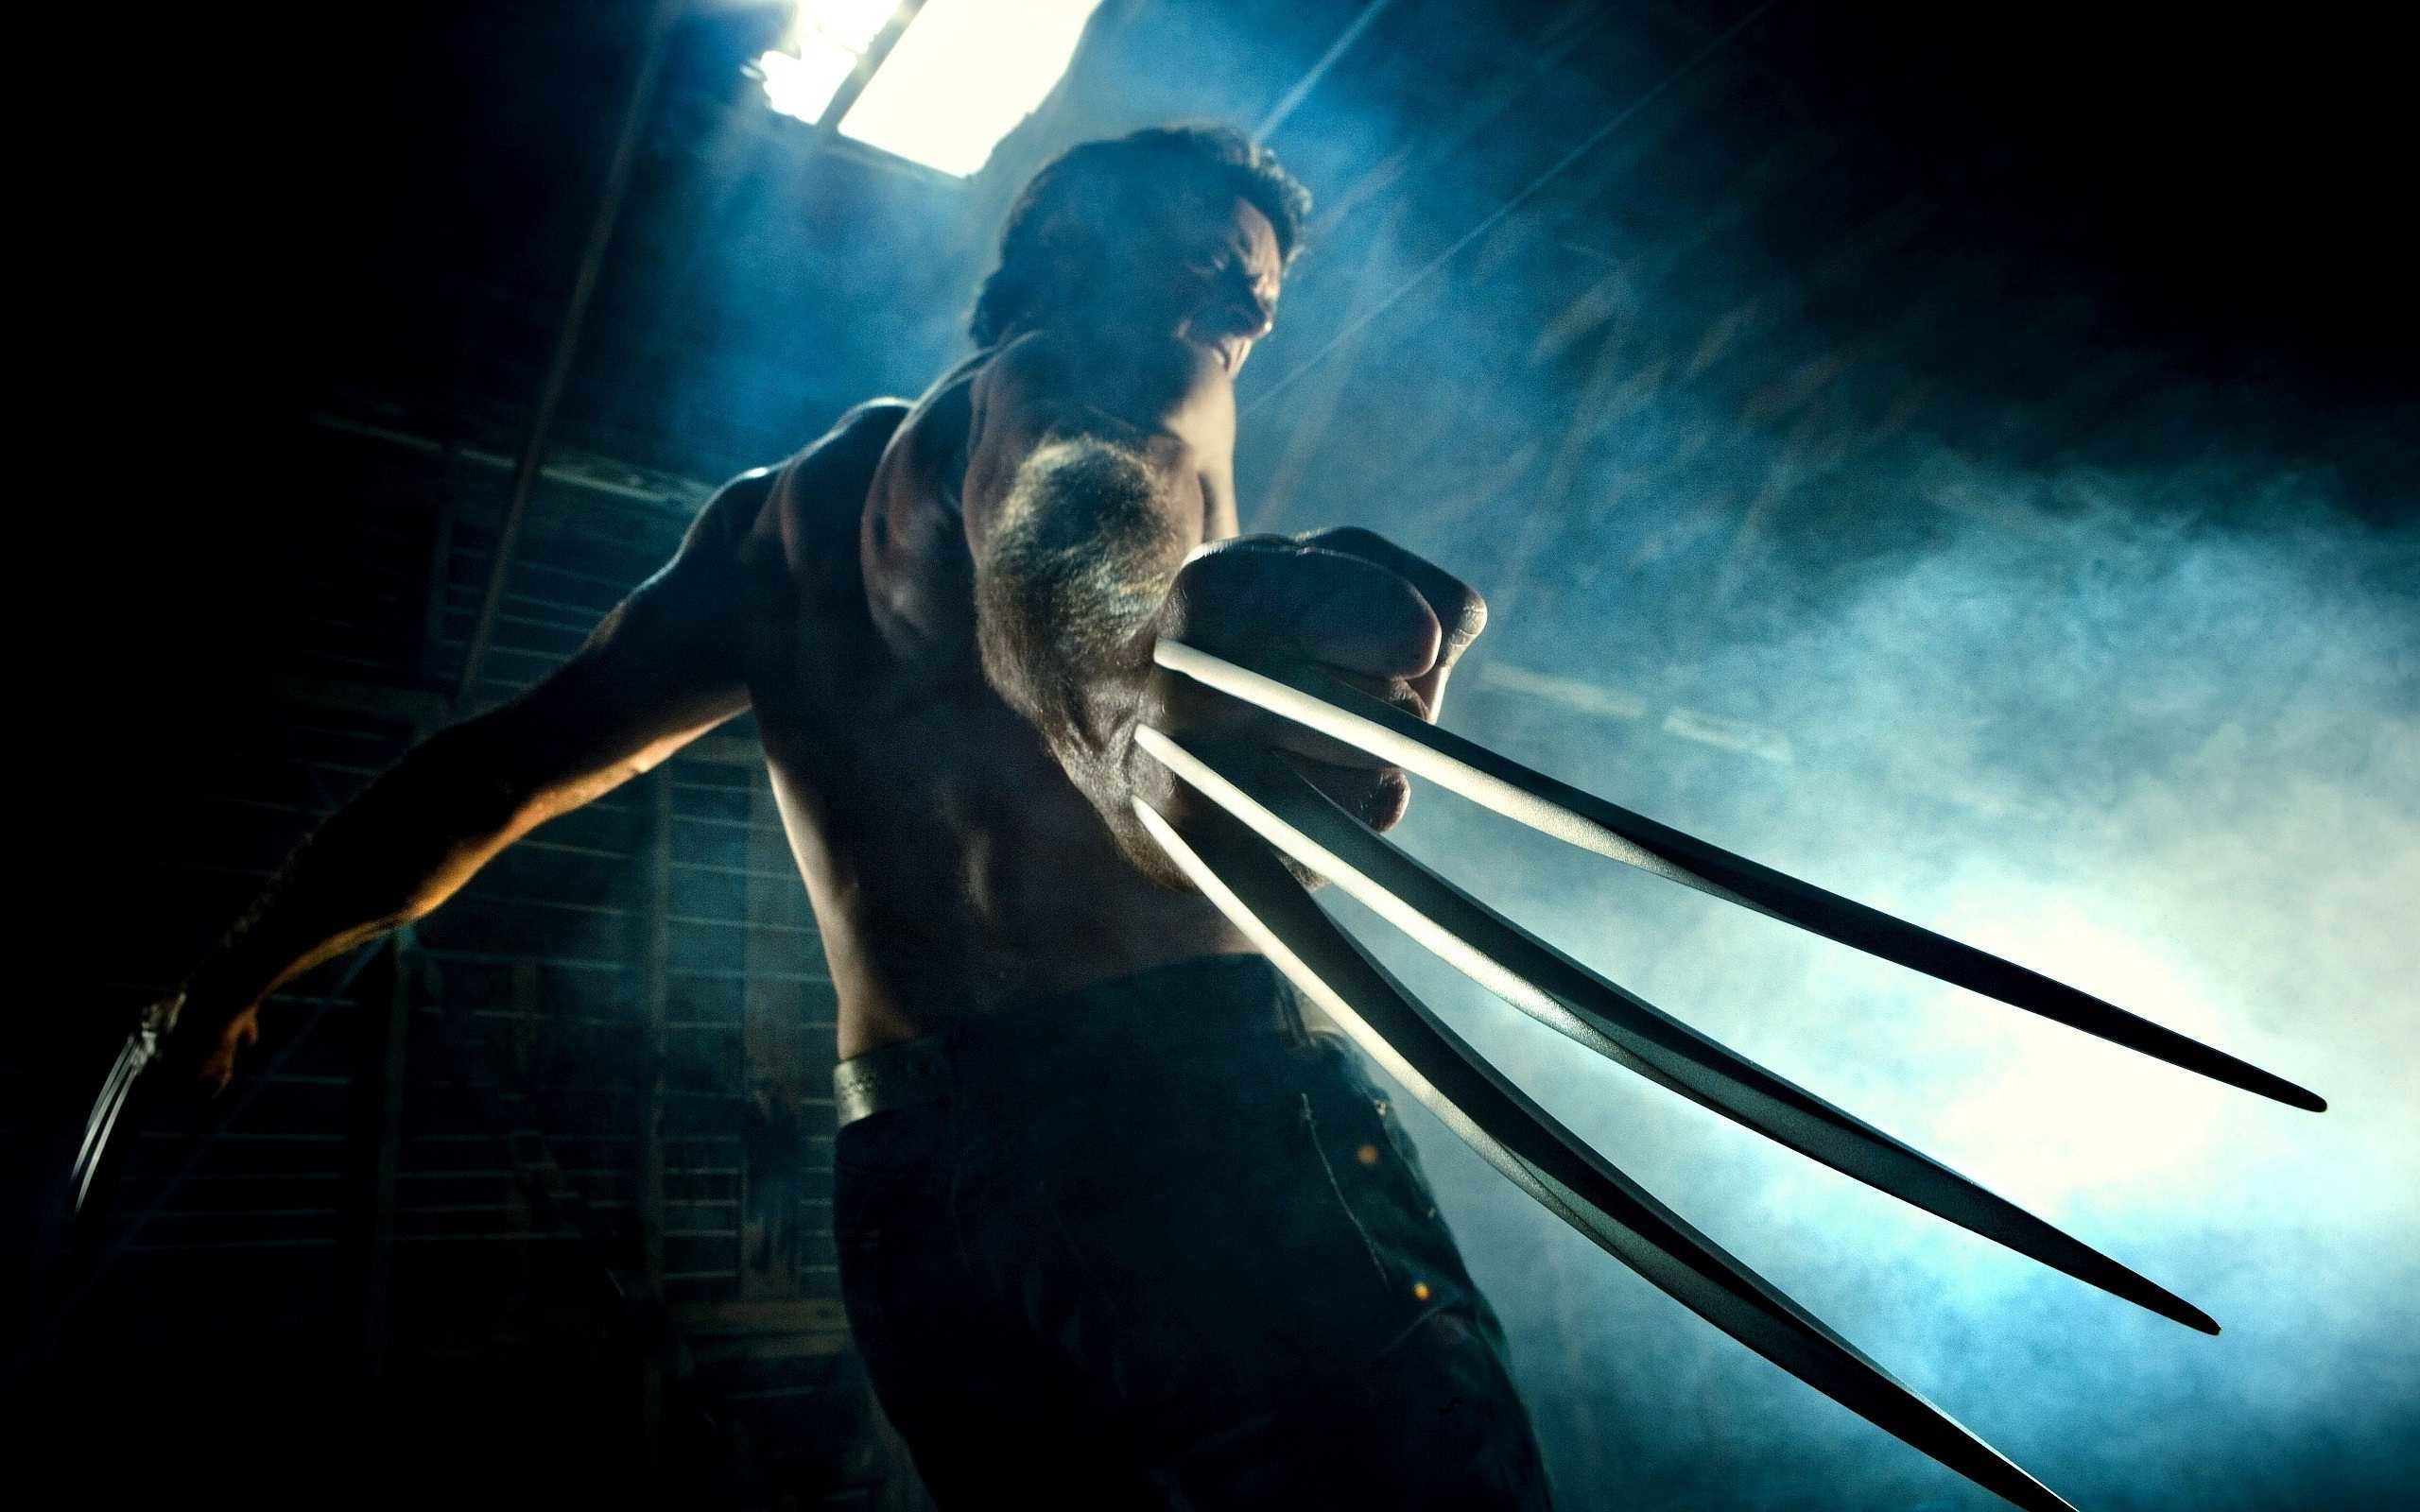 Logan 2017 Poster HD wallpaper 2016 for FREE. Download Desktop Backgrounds  in category Logan Wolverine for Fullscreen PC, mobile, iPhone